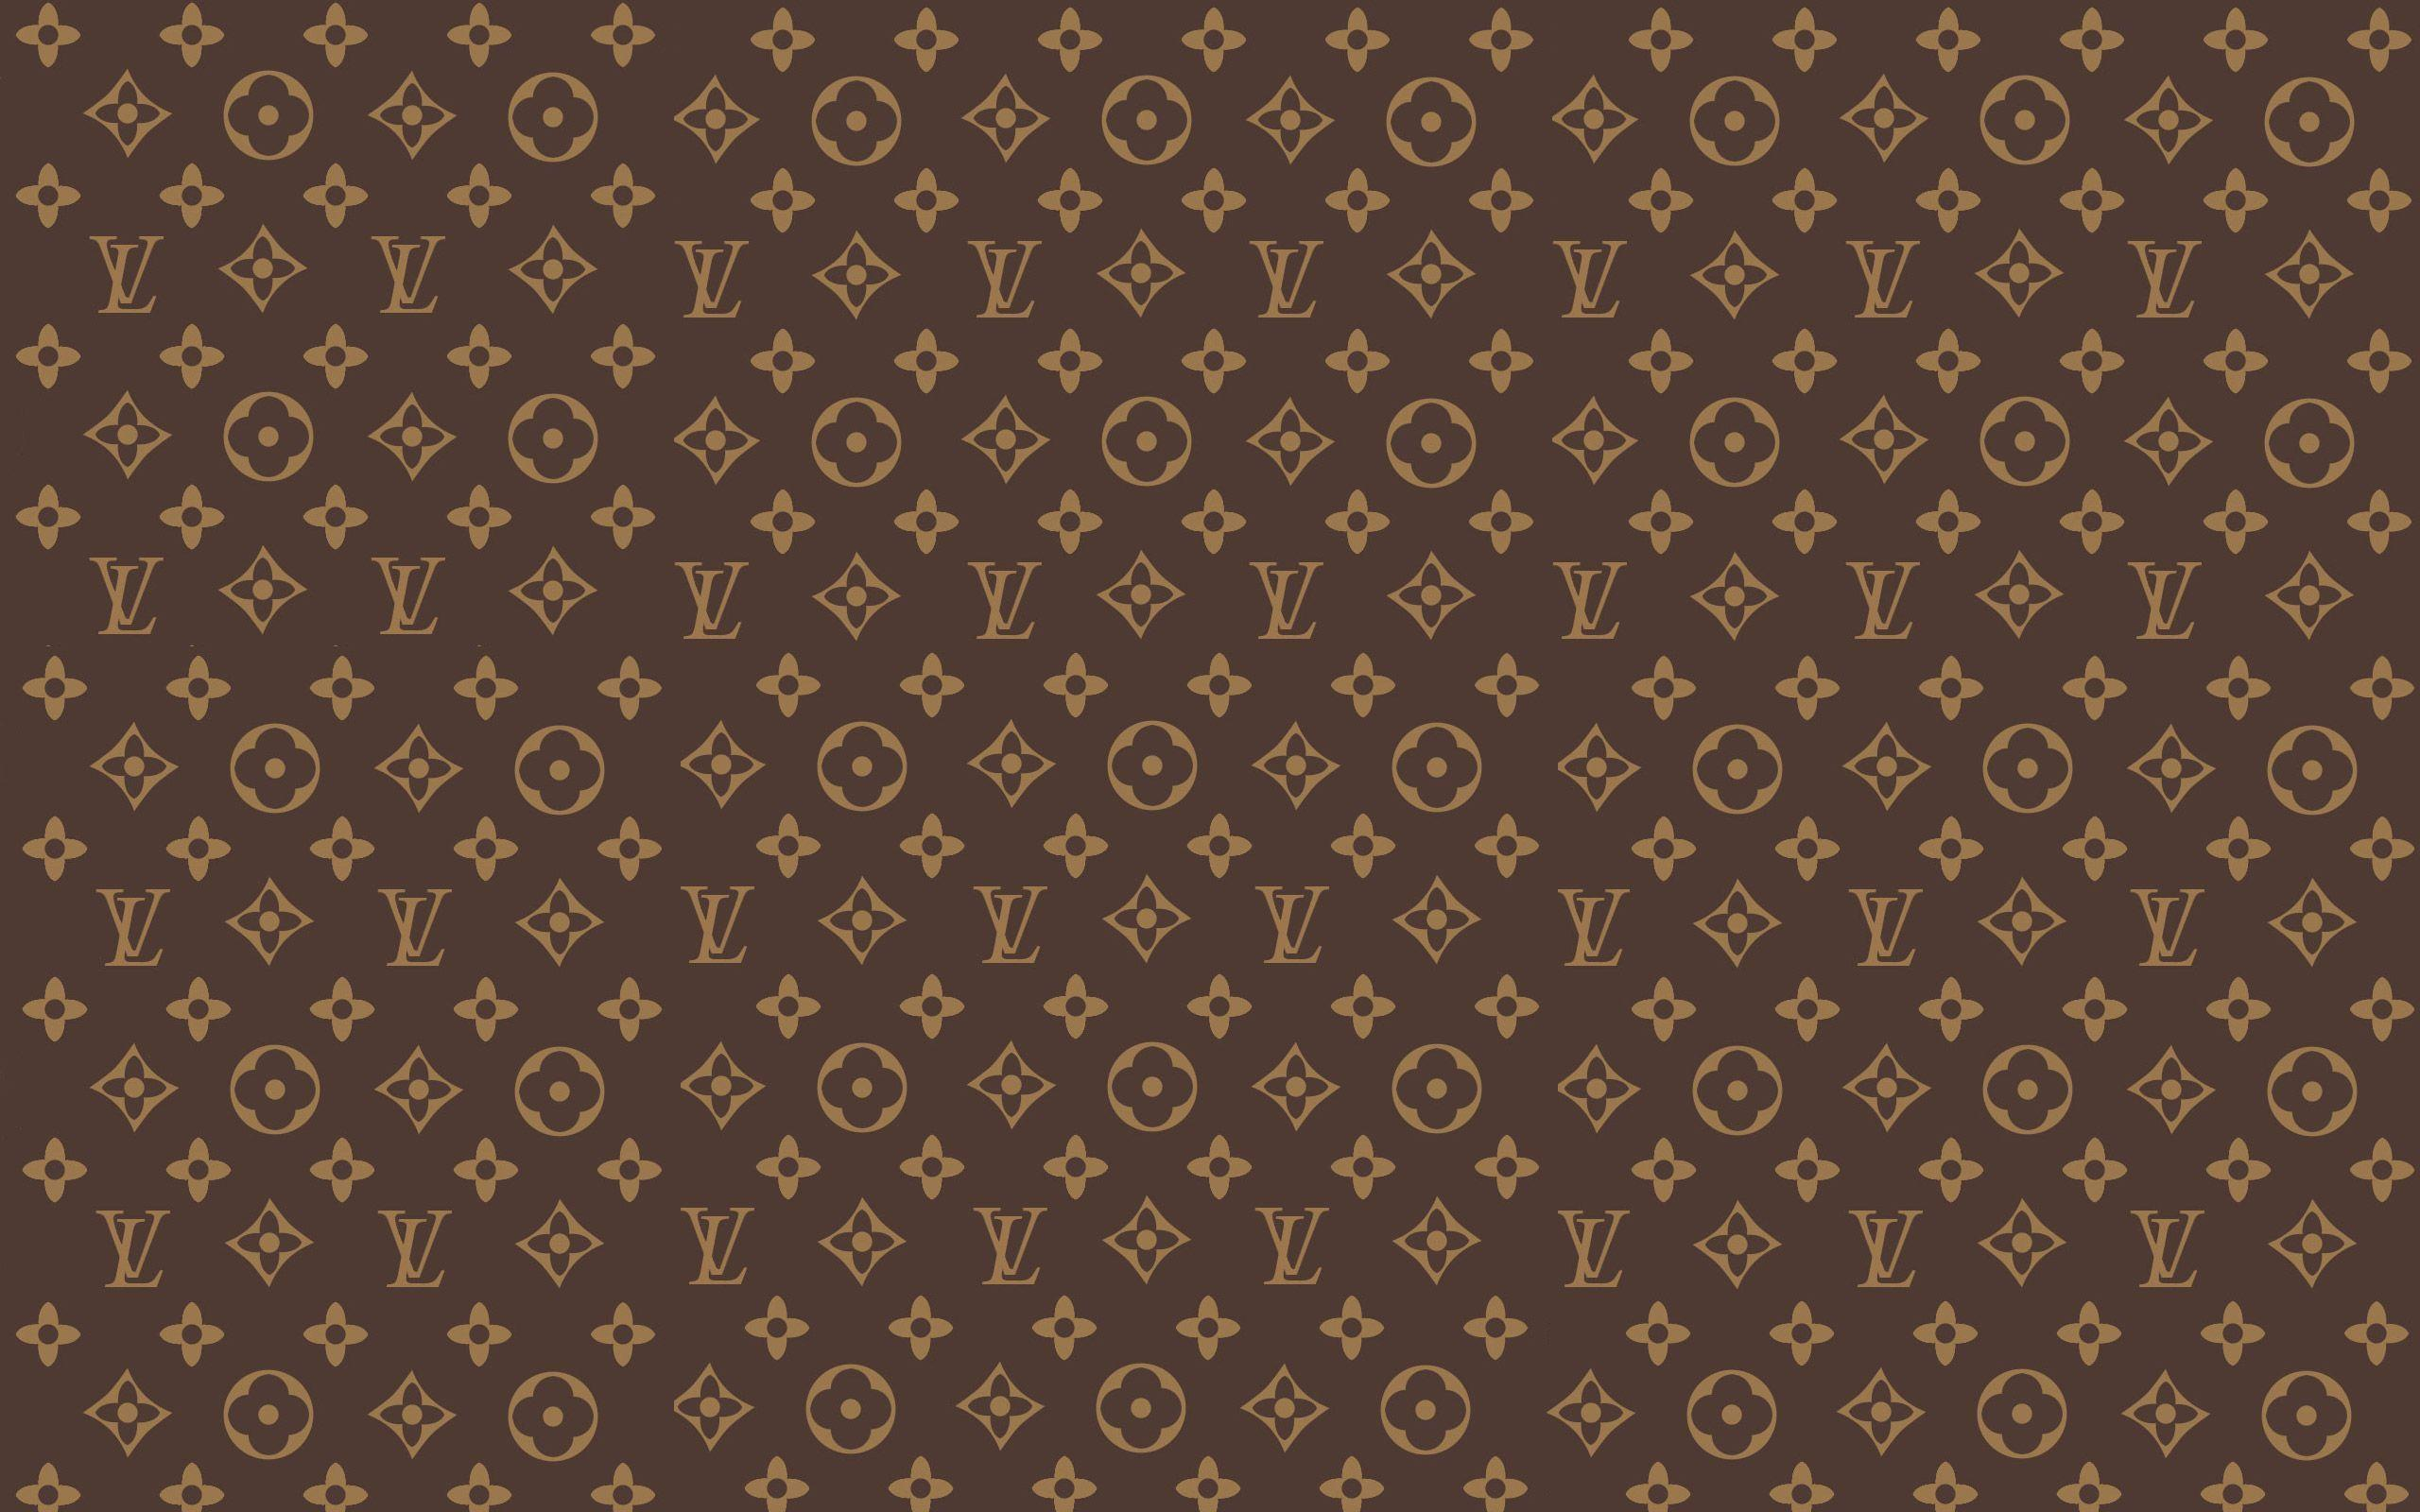 Fonds d'écran Louis Vuitton : tous les wallpapers Louis Vuitton